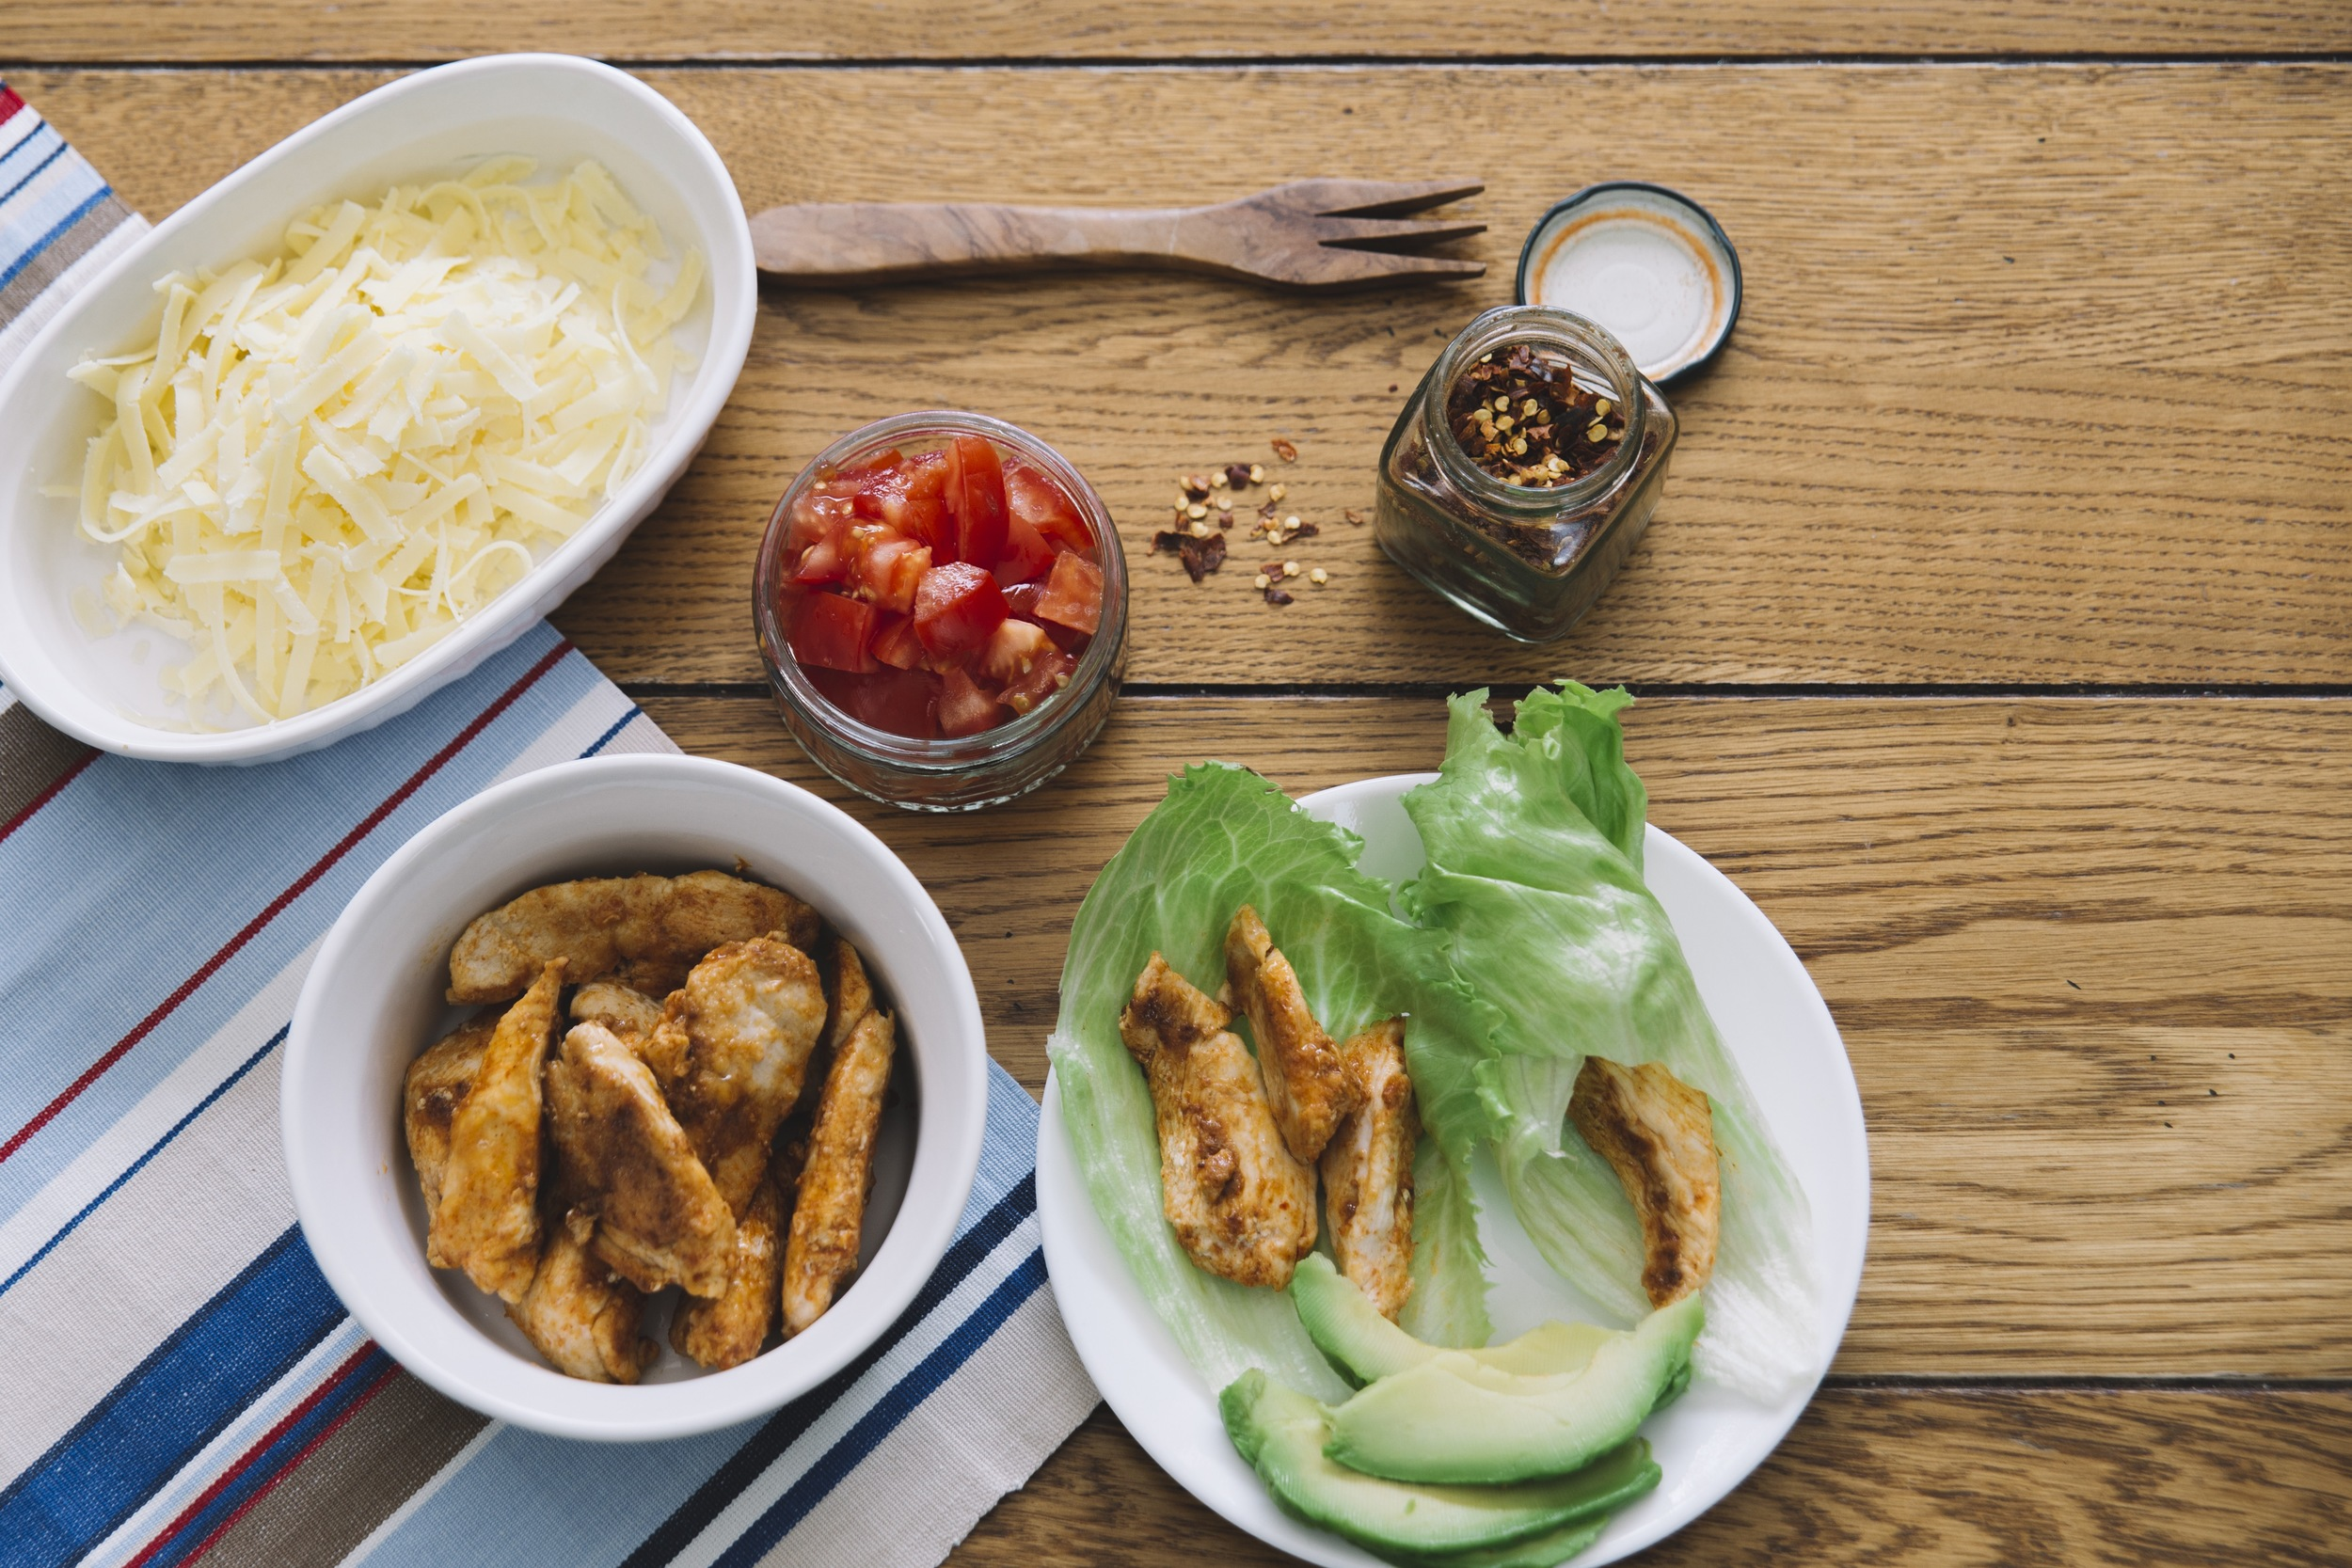 The Little Green Bed of Lettuce:  Light Chicken Fajitas